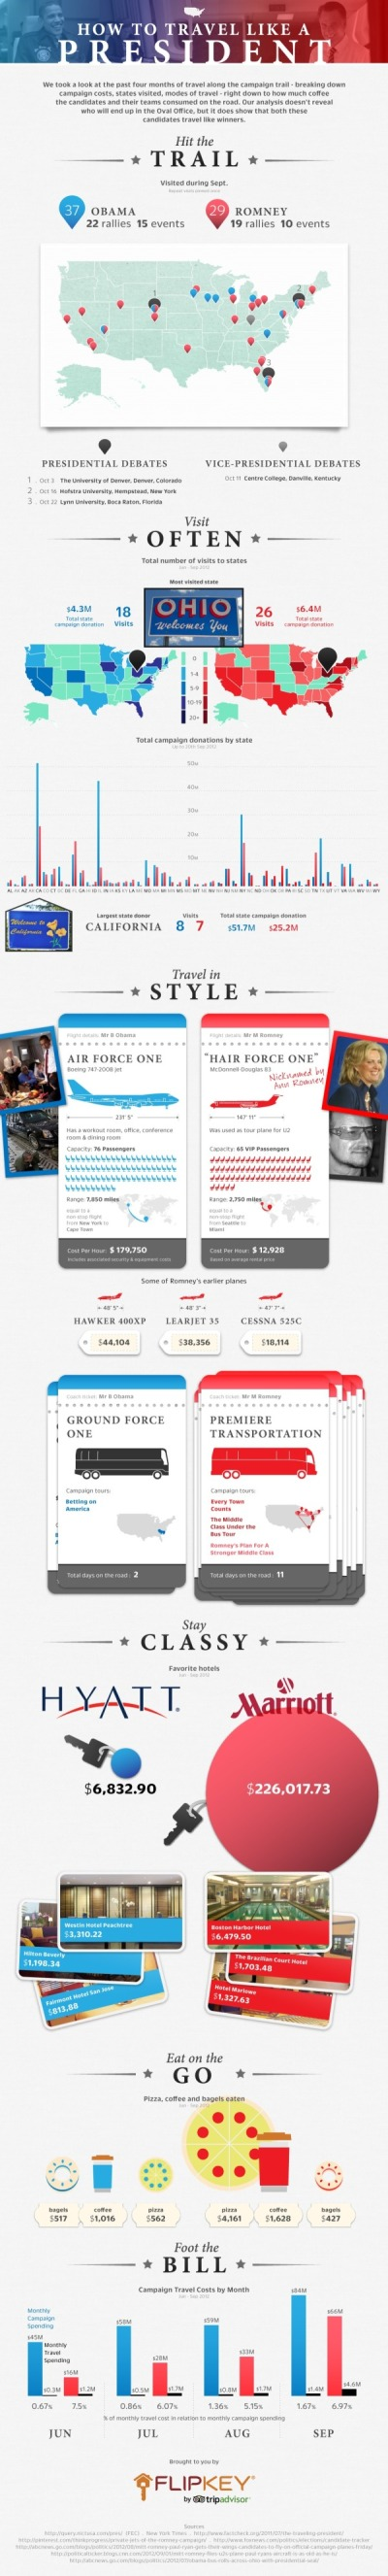 How to Travel Like a President infographic